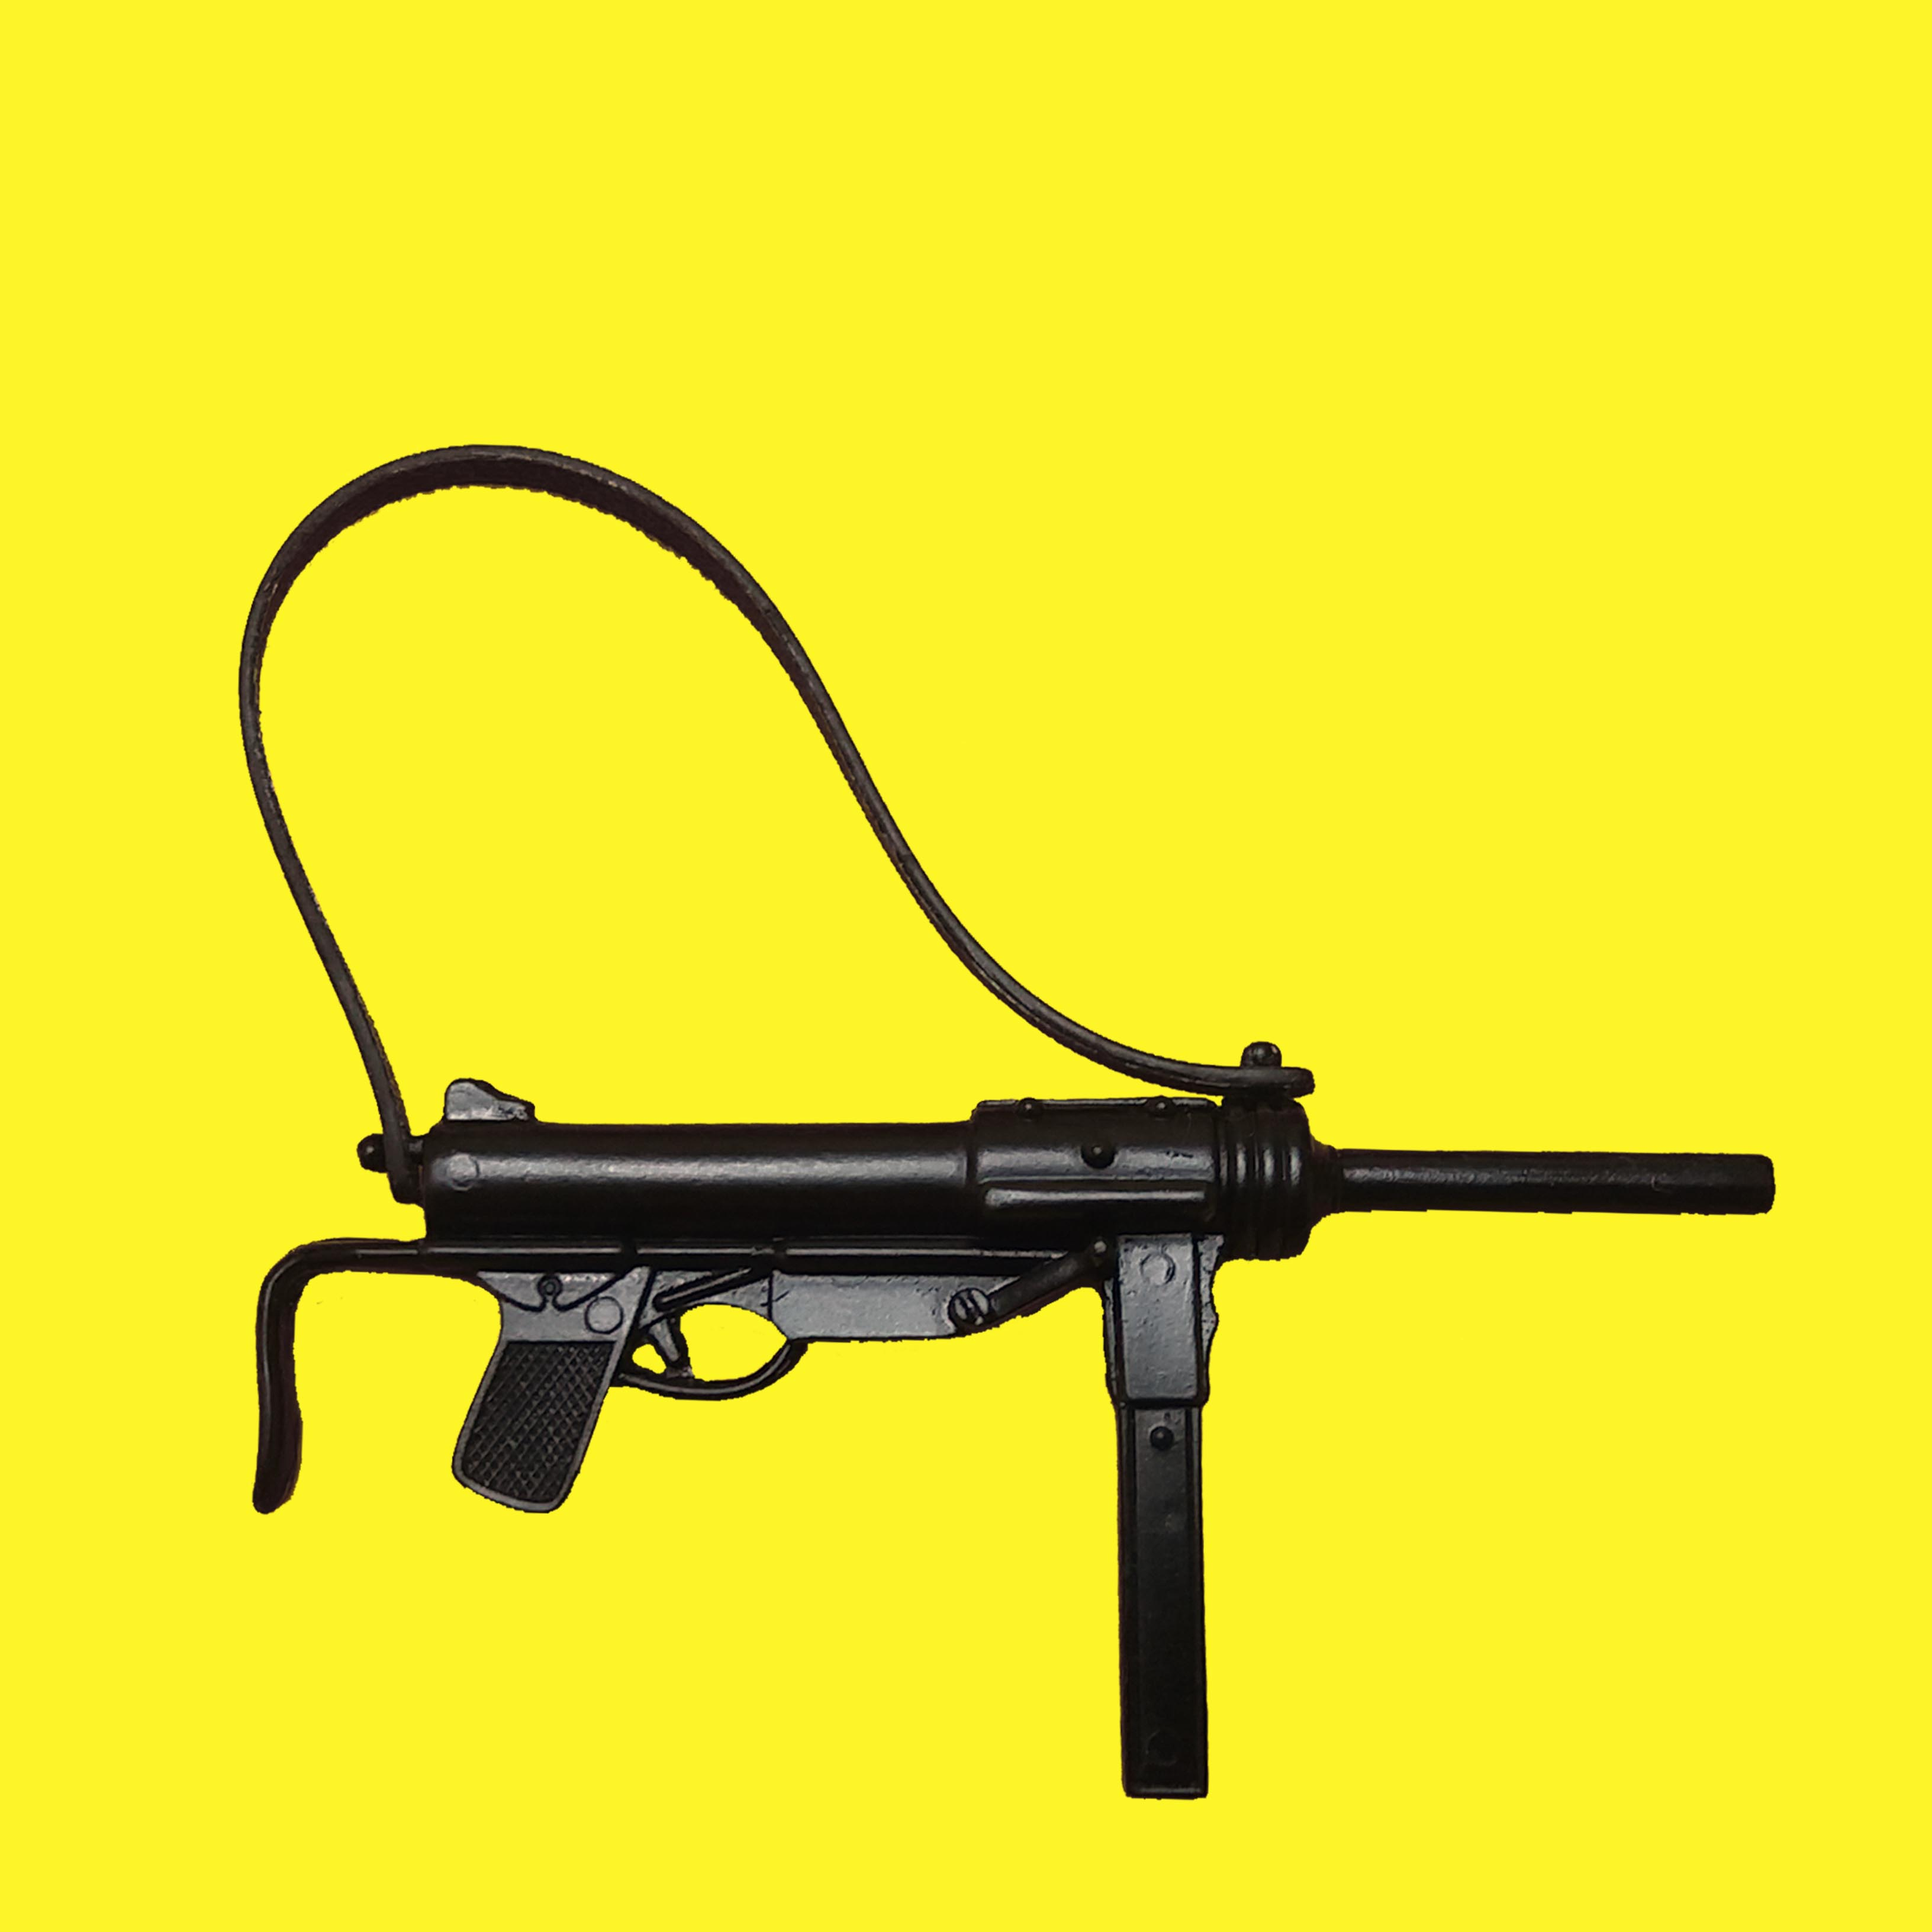 M3 Grease Gun (Black)